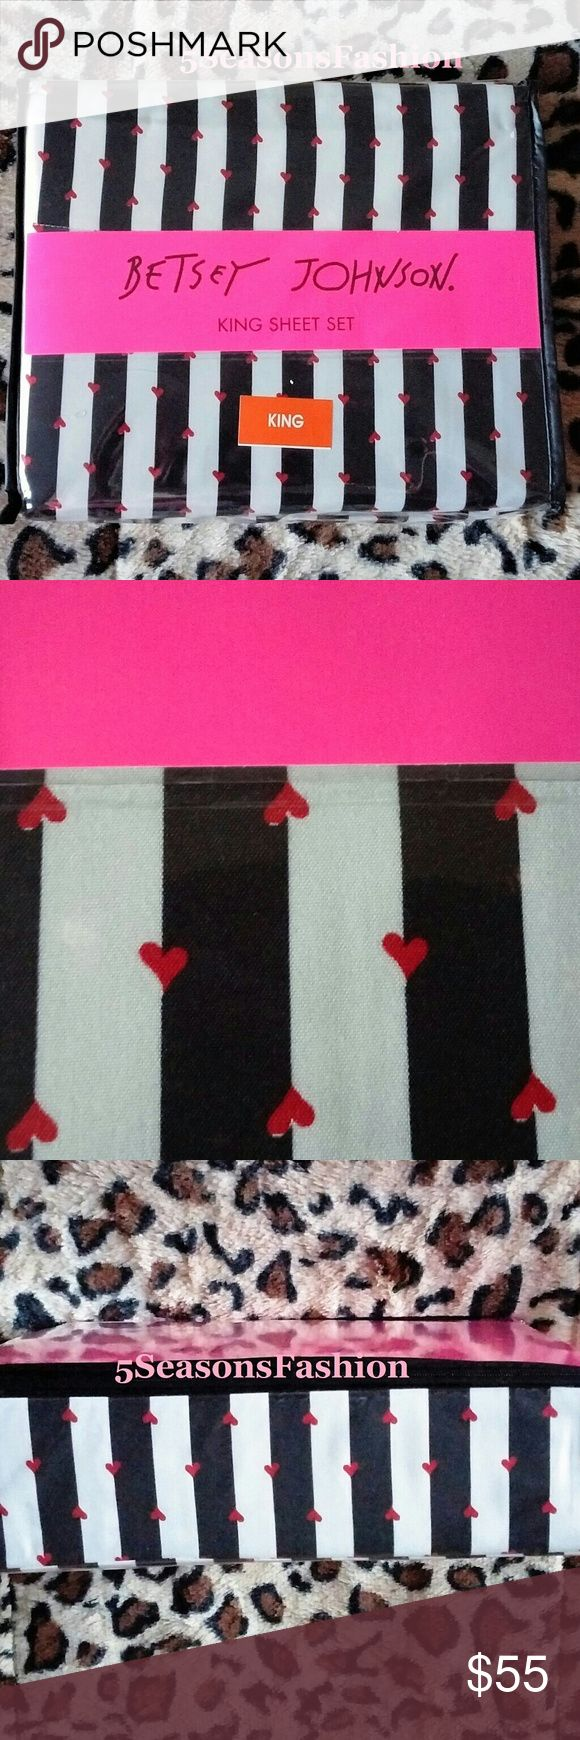 BETSEY JOHNSON King Sheets SET Striped Red Hearts Bold and contemporary 4 piece set of king size sheets by Betsey Johnson. Set includes 2 king pillowcases, 1 king flat sheet and 1 king fitted sheet. Black and cream striped with tiny red hearts pattern. Polyester microfiber fabric. Xox Betsey collection. Betsey Johnson Other